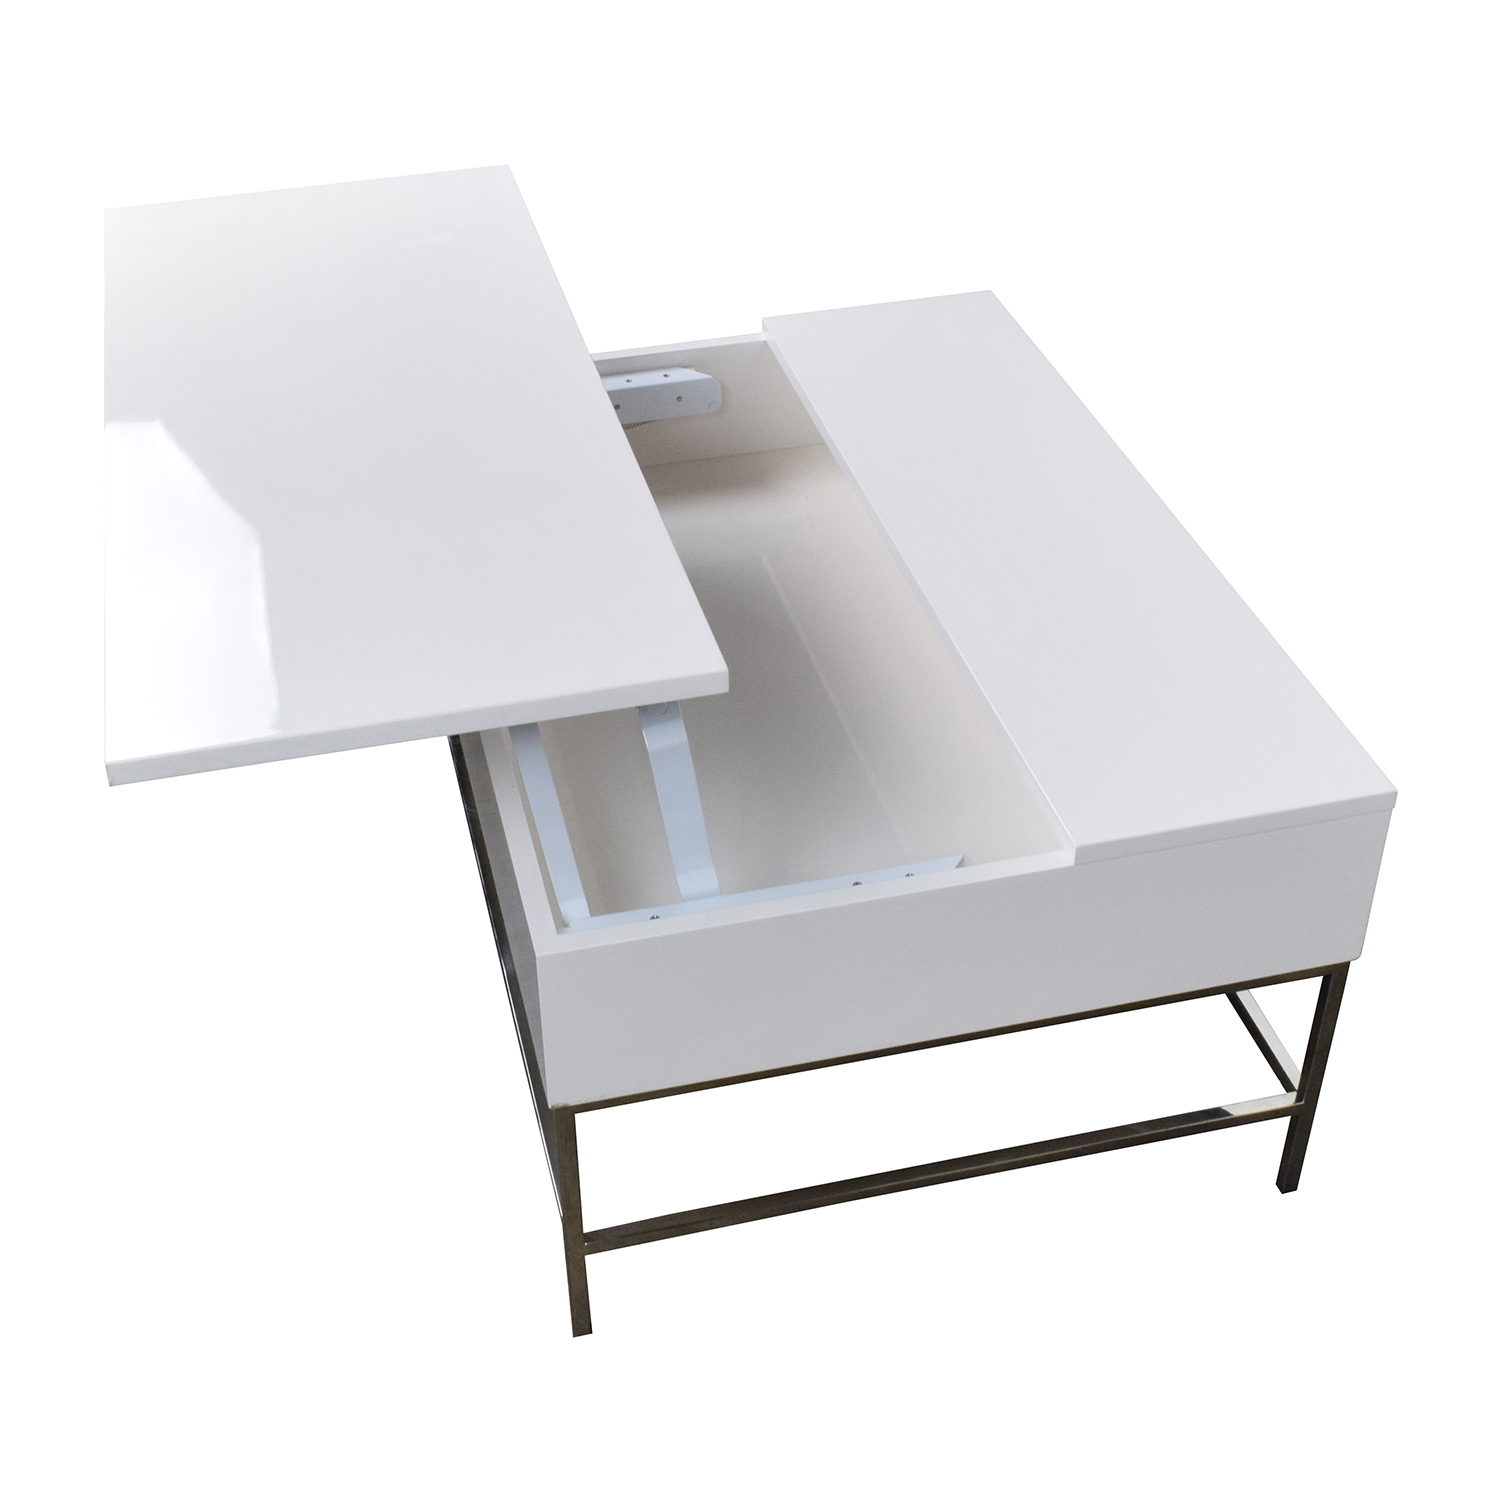 34 Off West Elm Storage Table West Elm White Lacquer Wood Coffee Table Tables